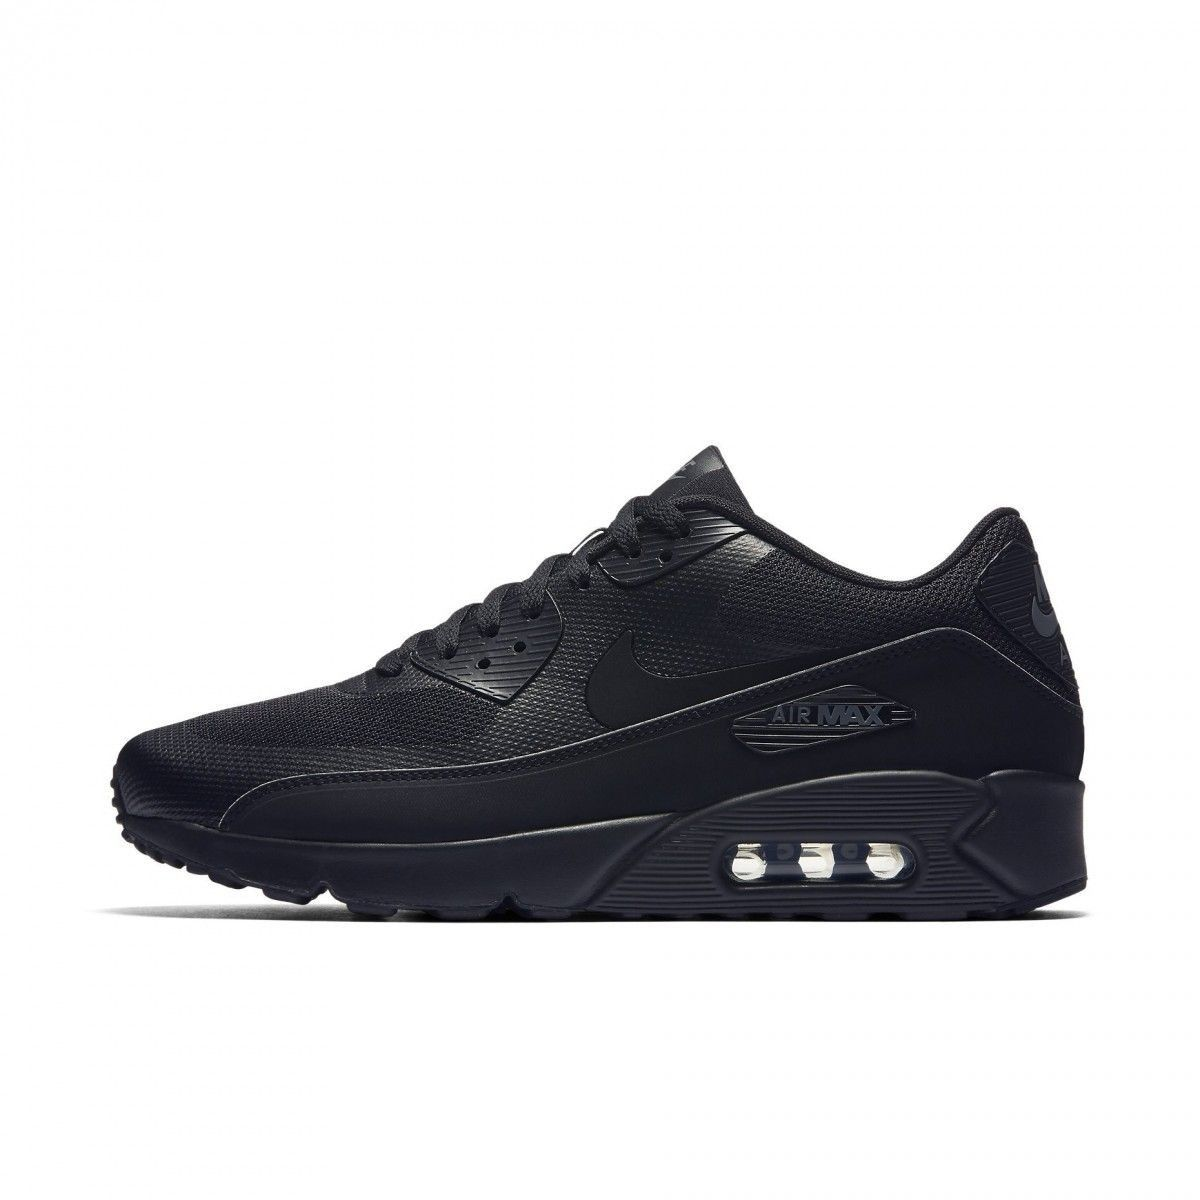 Basket Nike Air Max 90 Ultra 2.0 Essential 875695 002